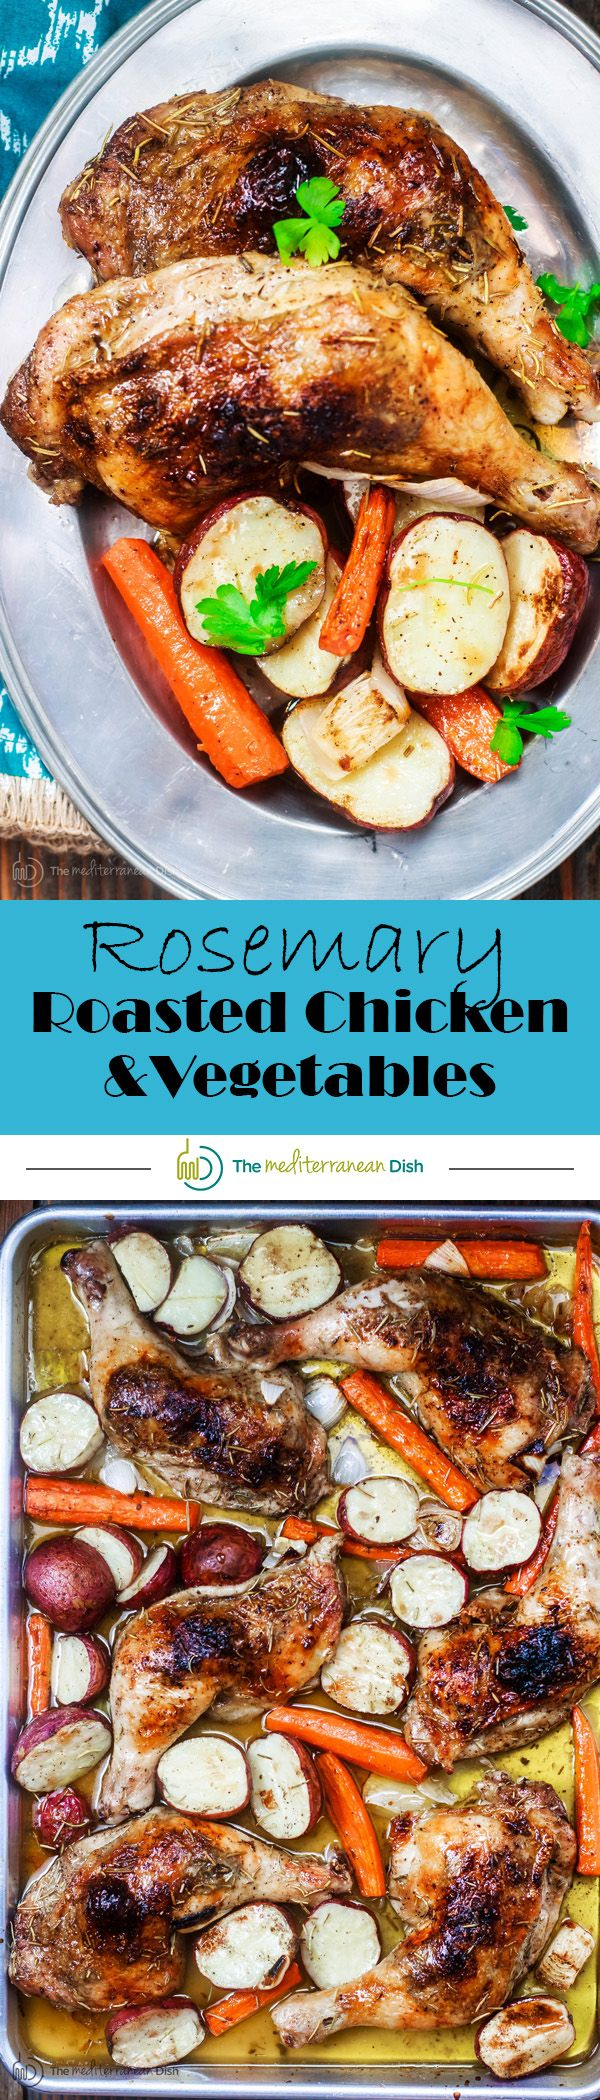 Rosemary Roasted Chicken Recipe with Vegetables   The Mediterranean Dish. A simple and satisfying one-pan roasted chicken recipe packed with flavor from Mediterranean spices including rosemary and a generous amount of lemon juice and olive oil. A healthy and cozy fuss-free dinner!